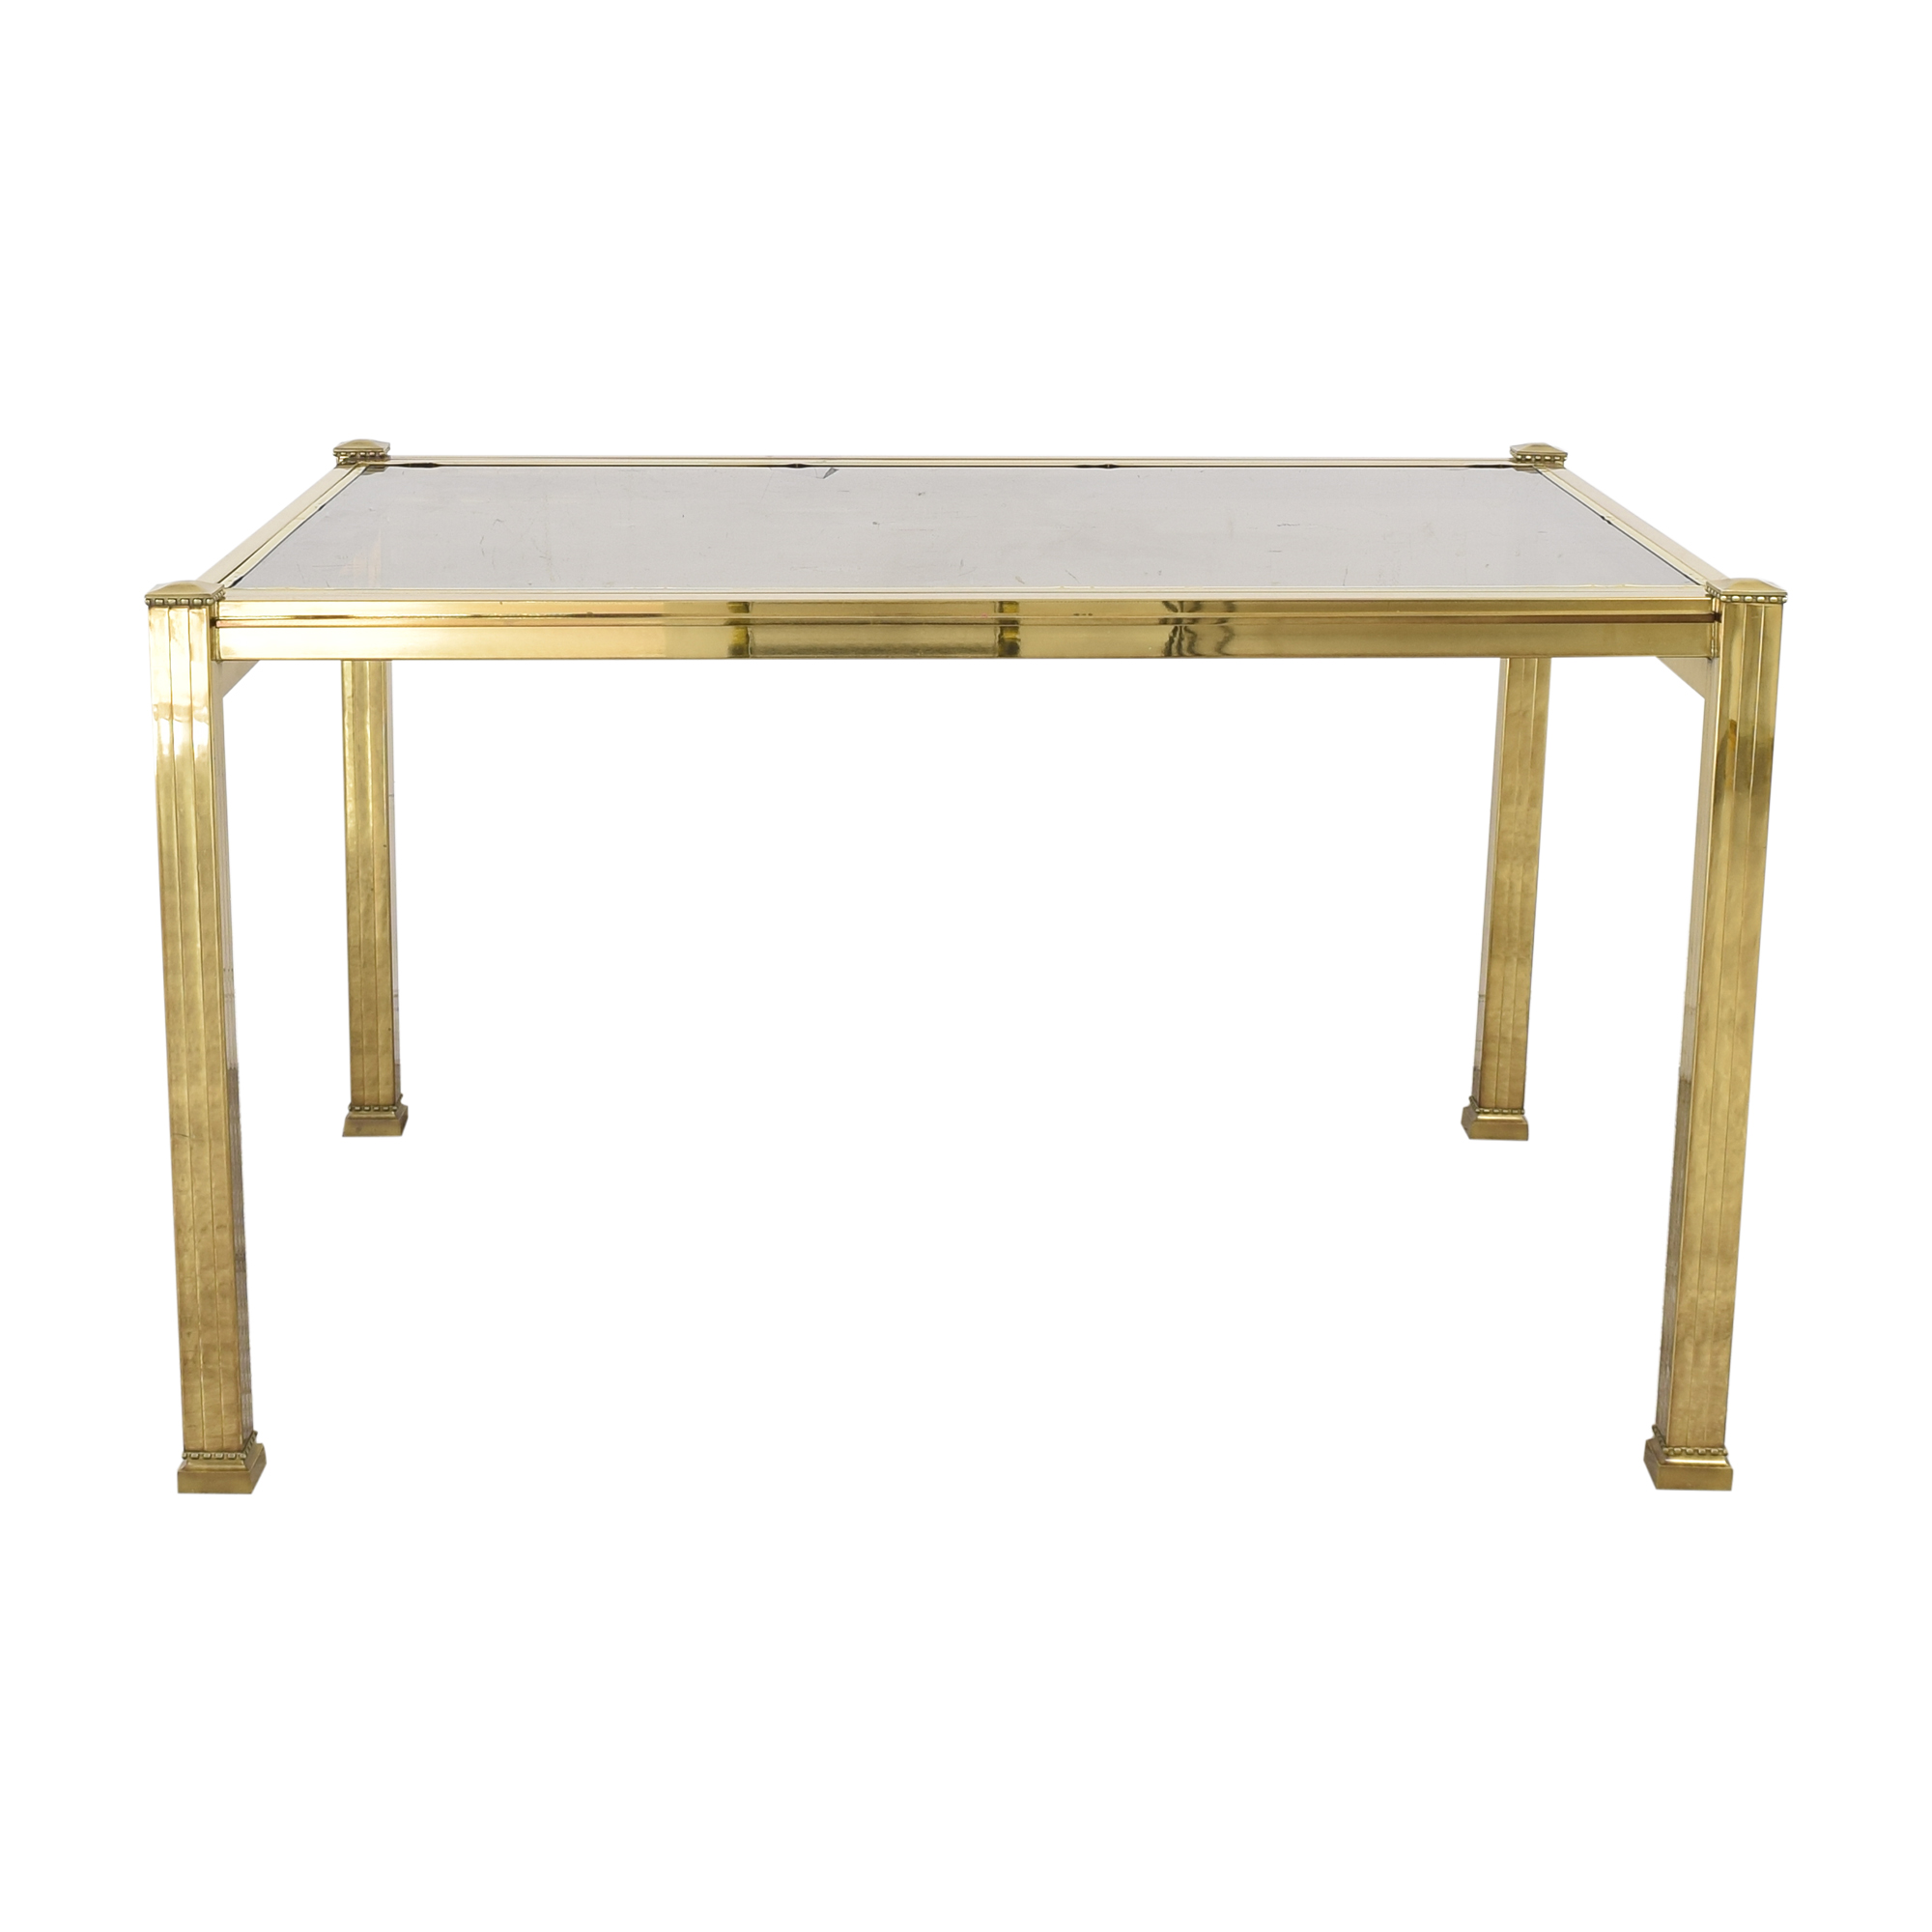 Bloomingdale's Glass Top Extendable Dining Table Bloomingdale's